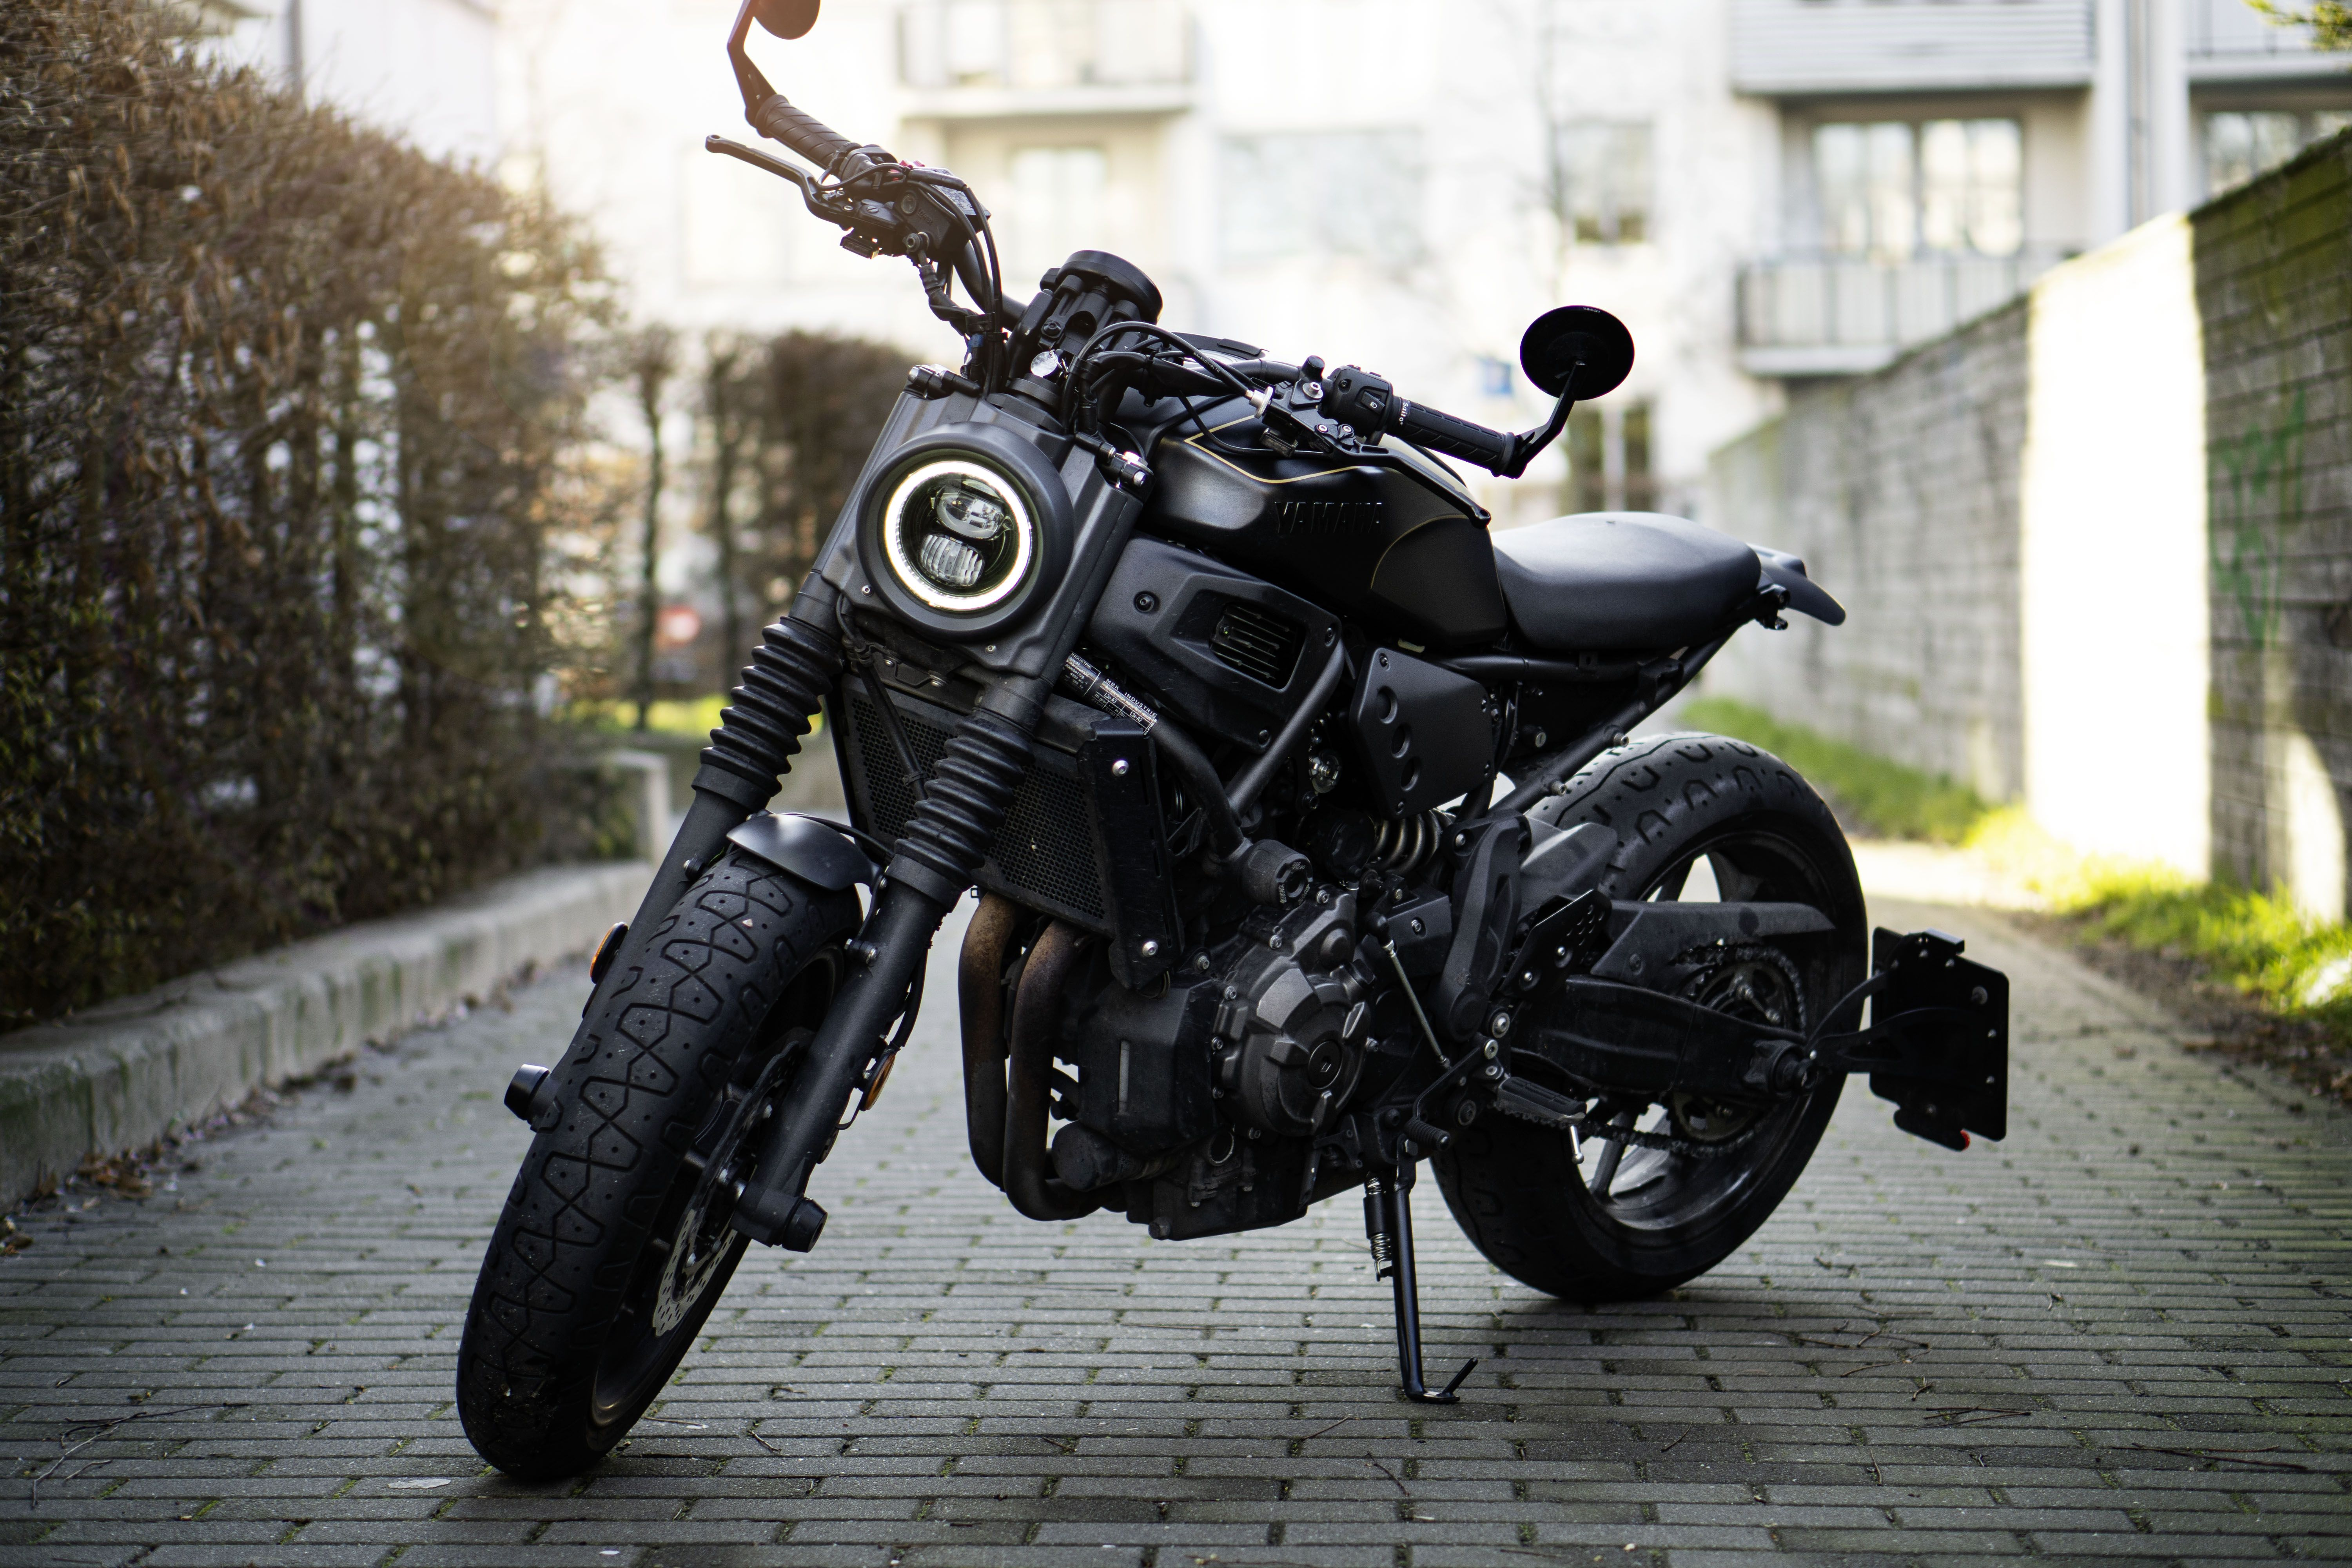 Rate this one from 1 to 10 : Yamaha XSR 700